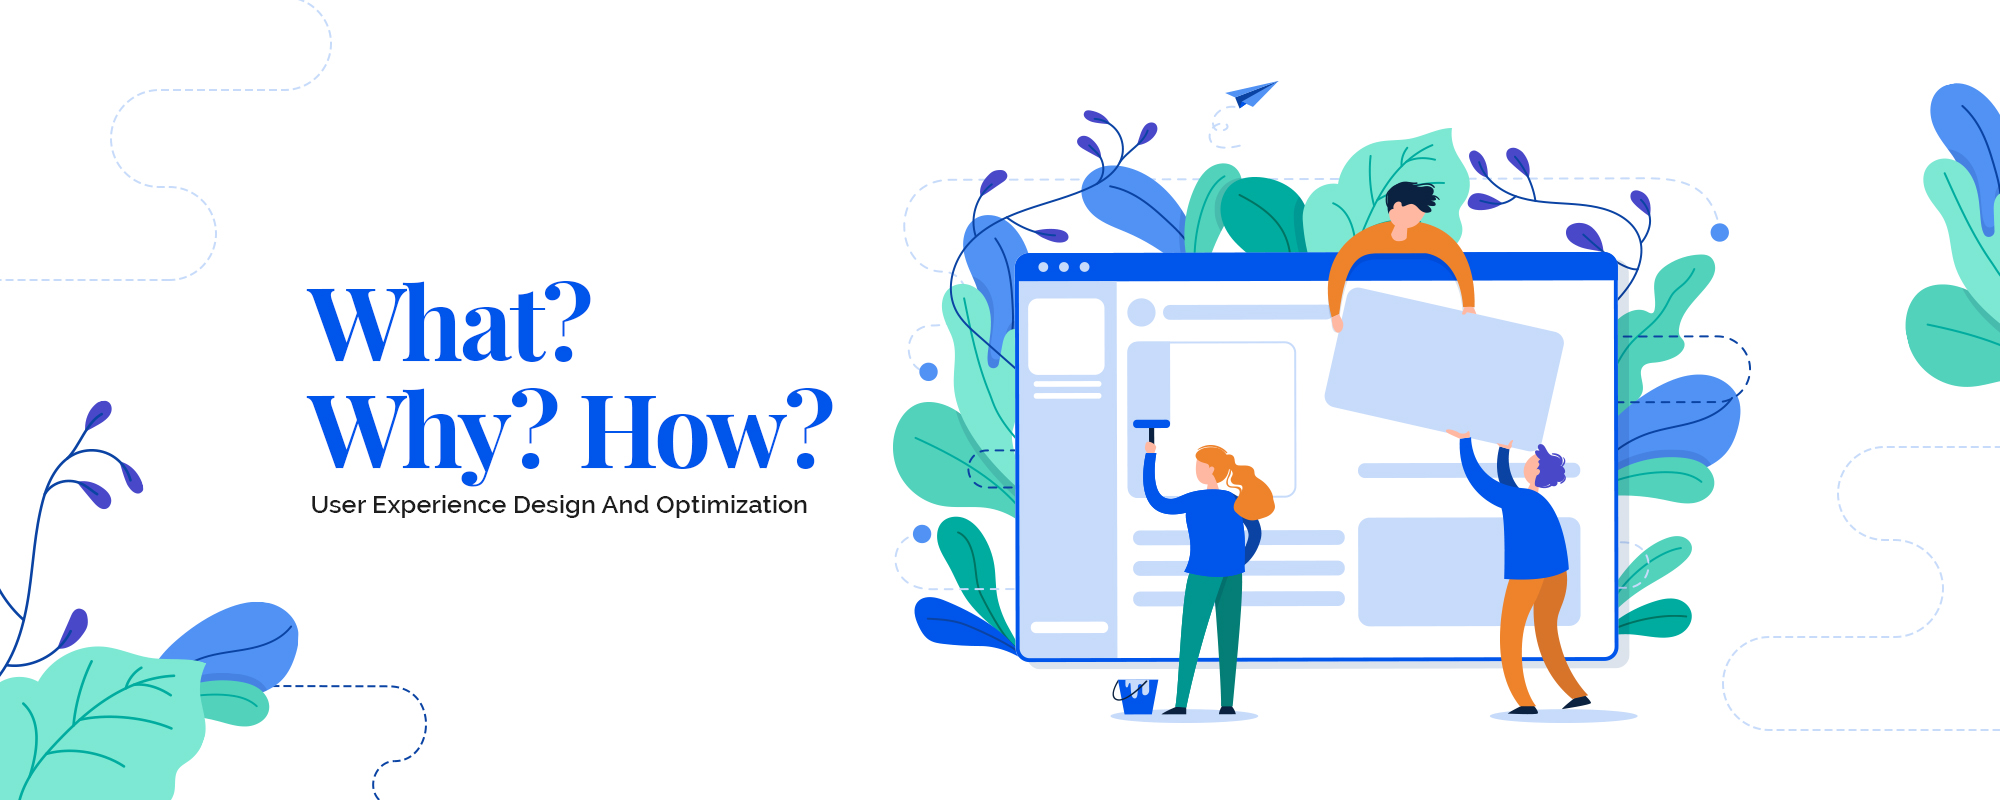 User Experience Design and Optimization: What-Why-How